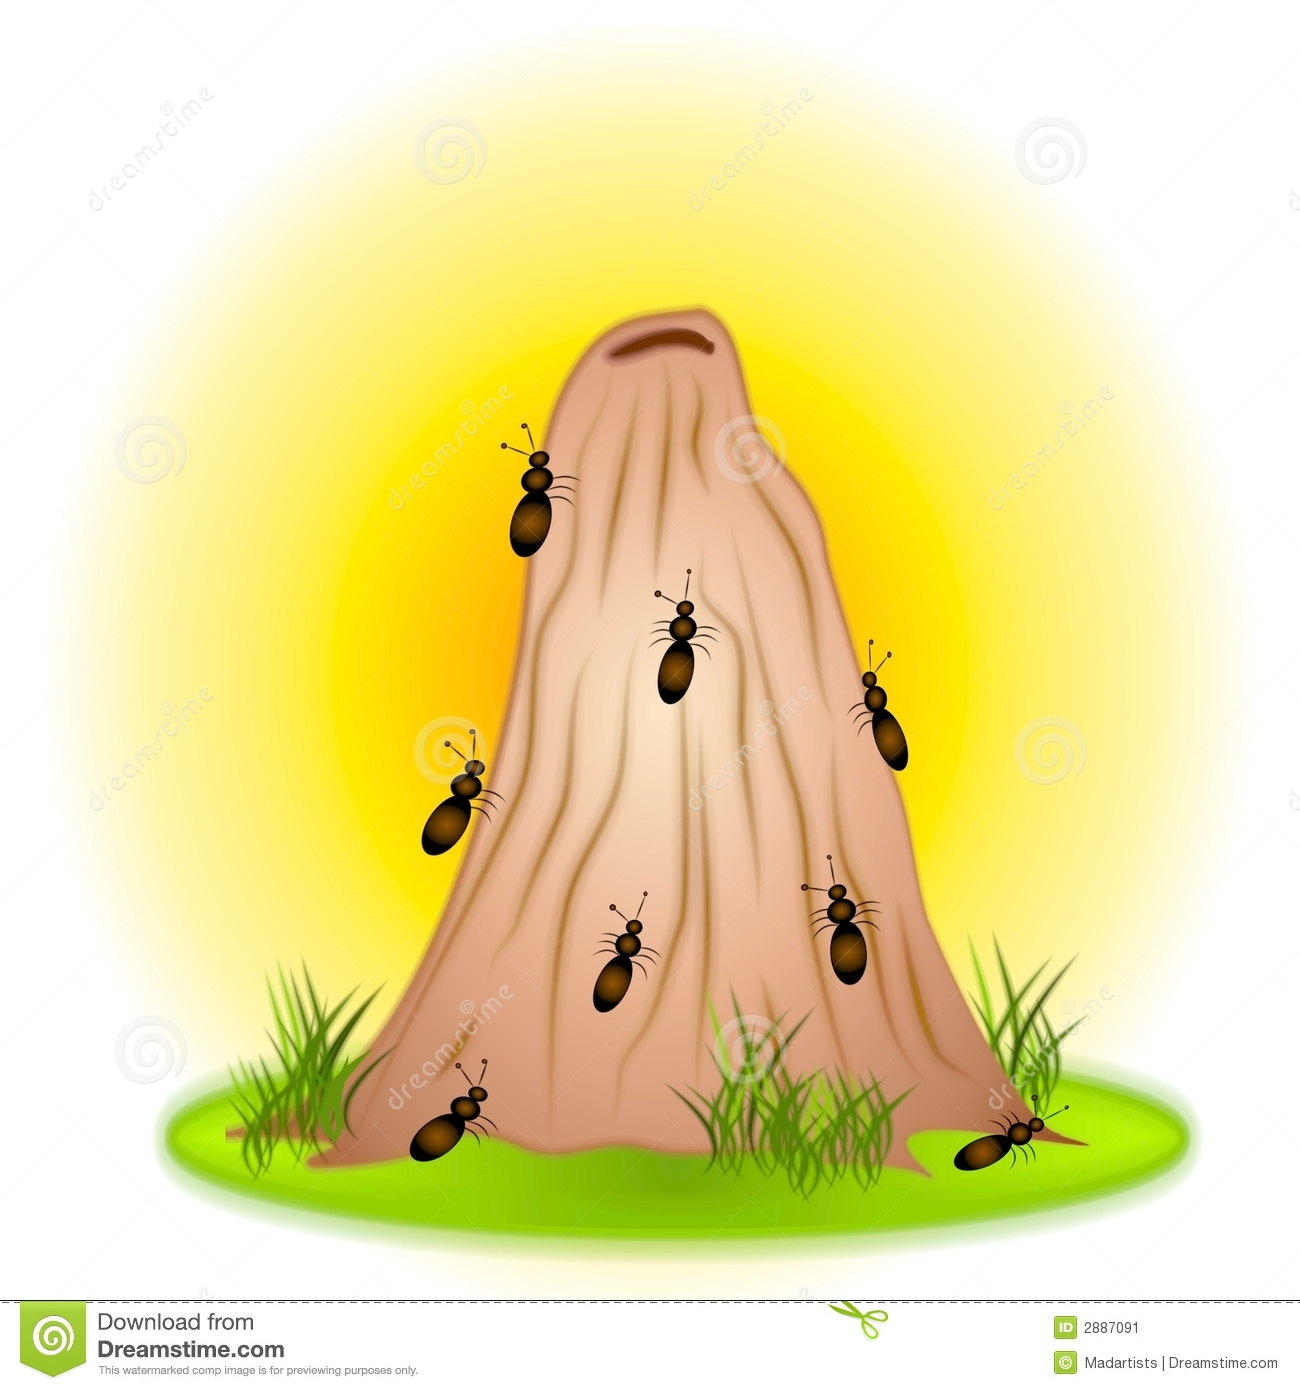 Clip Art Illustration Of A Bunch Of Ants On An Anthill With Grass